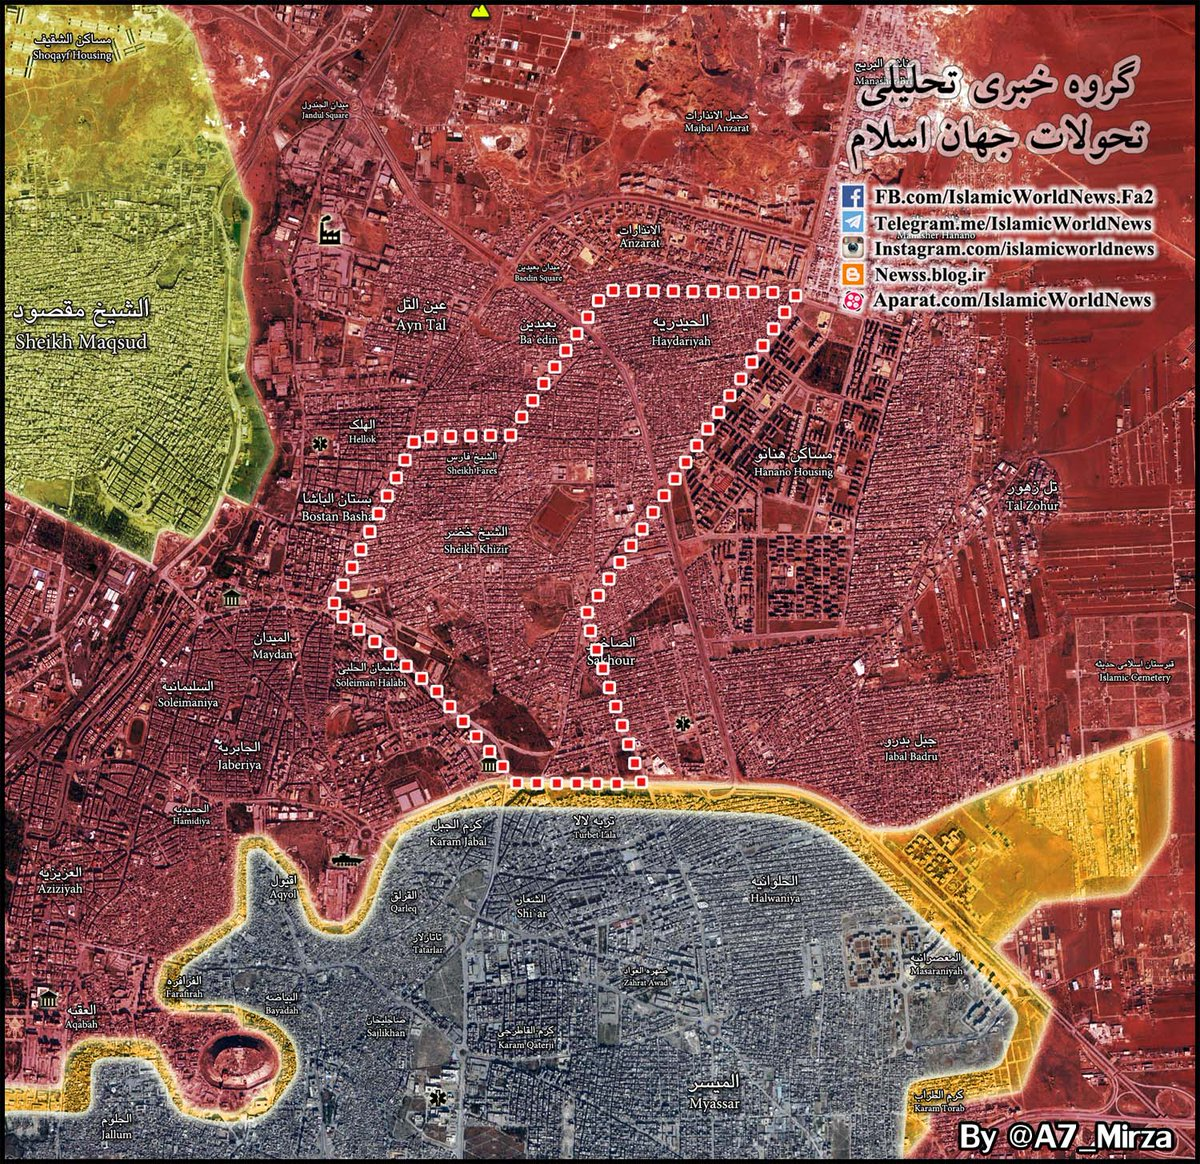 12 Neighborhoods (40% of Eastern Aleppo) Were Cleared from Militants in Aleppo City